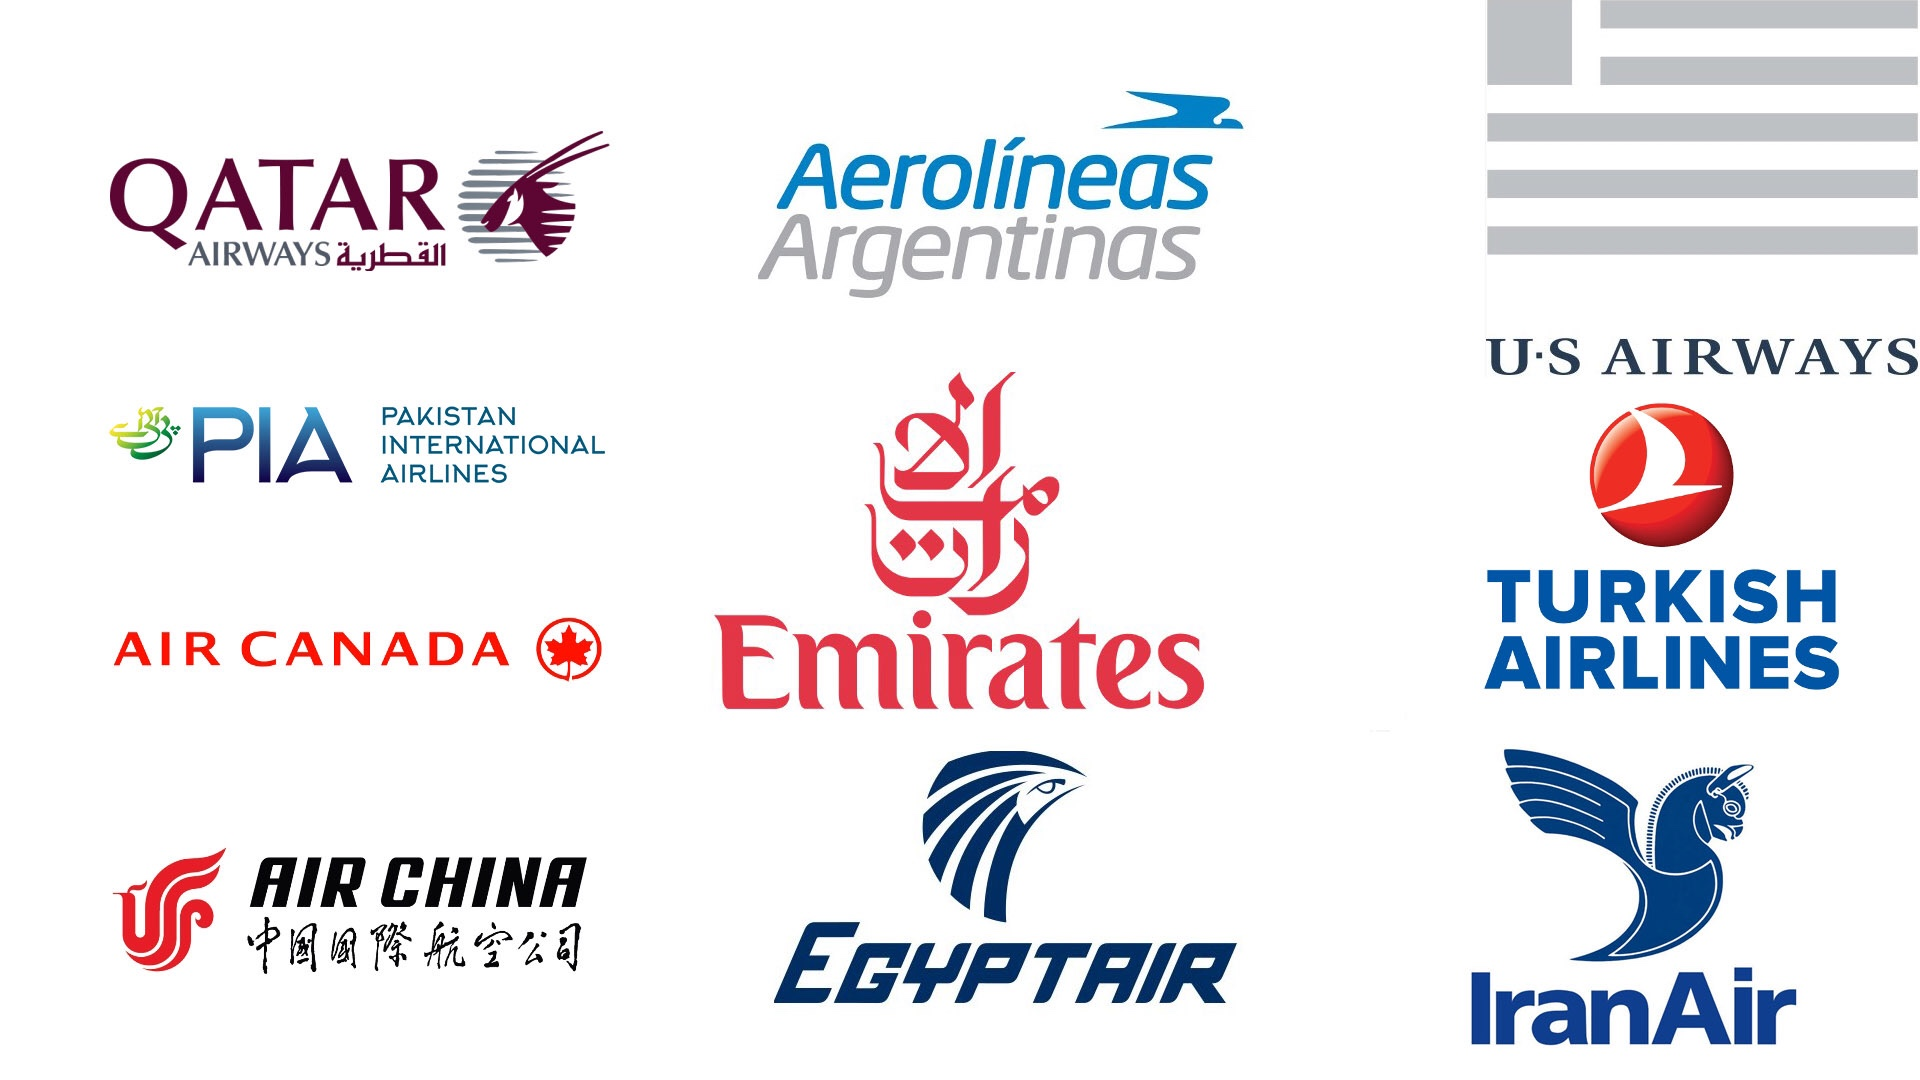 5 Best Airline Logos And Why Are They So Great?